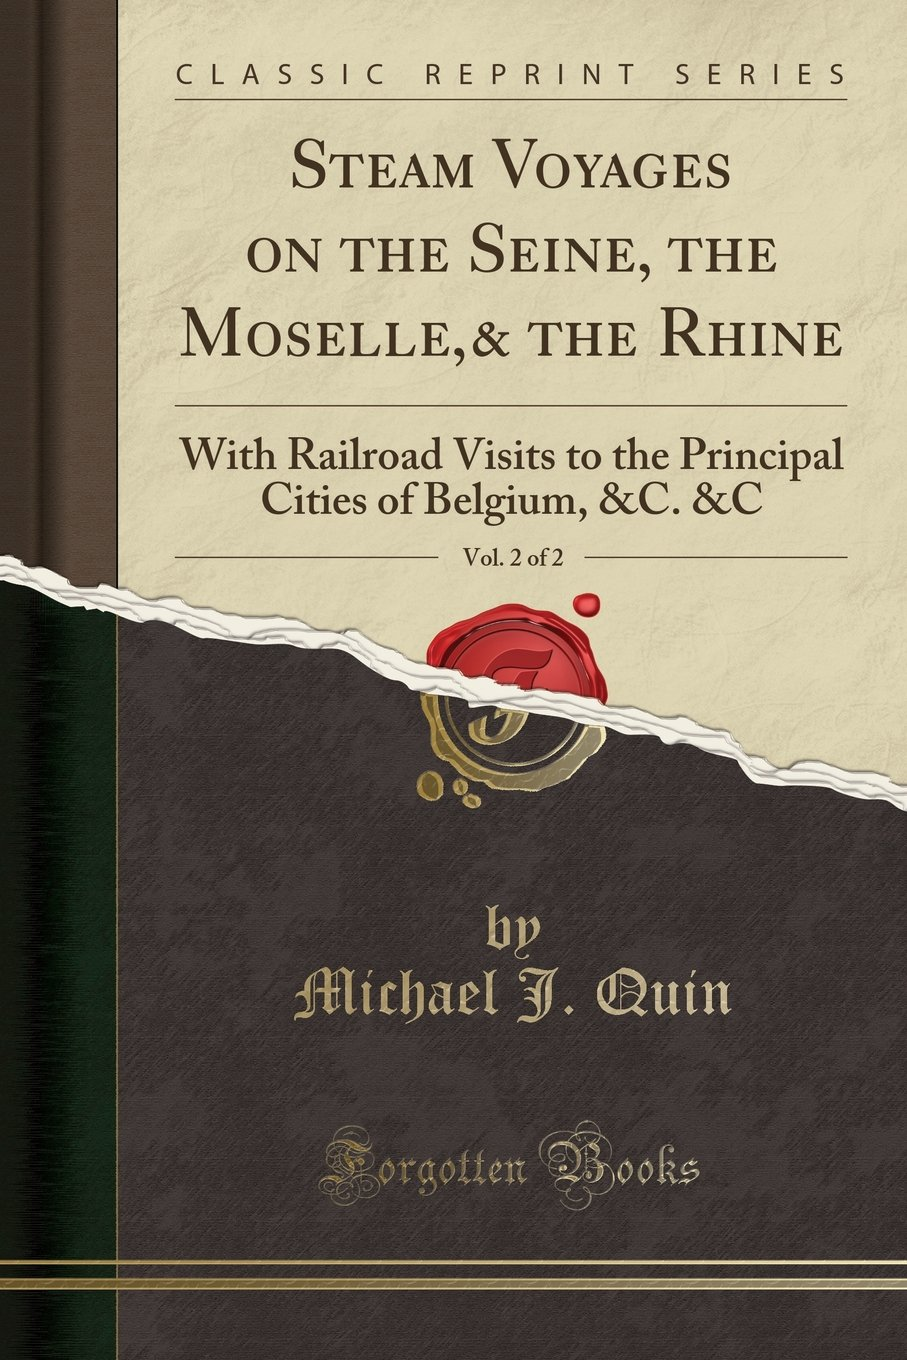 Steam Voyages on the Seine, the Moselle,& the Rhine, Vol. 2 of 2: With Railroad Visits to the Principal Cities of Belgium, C. &C (Classic Reprint)